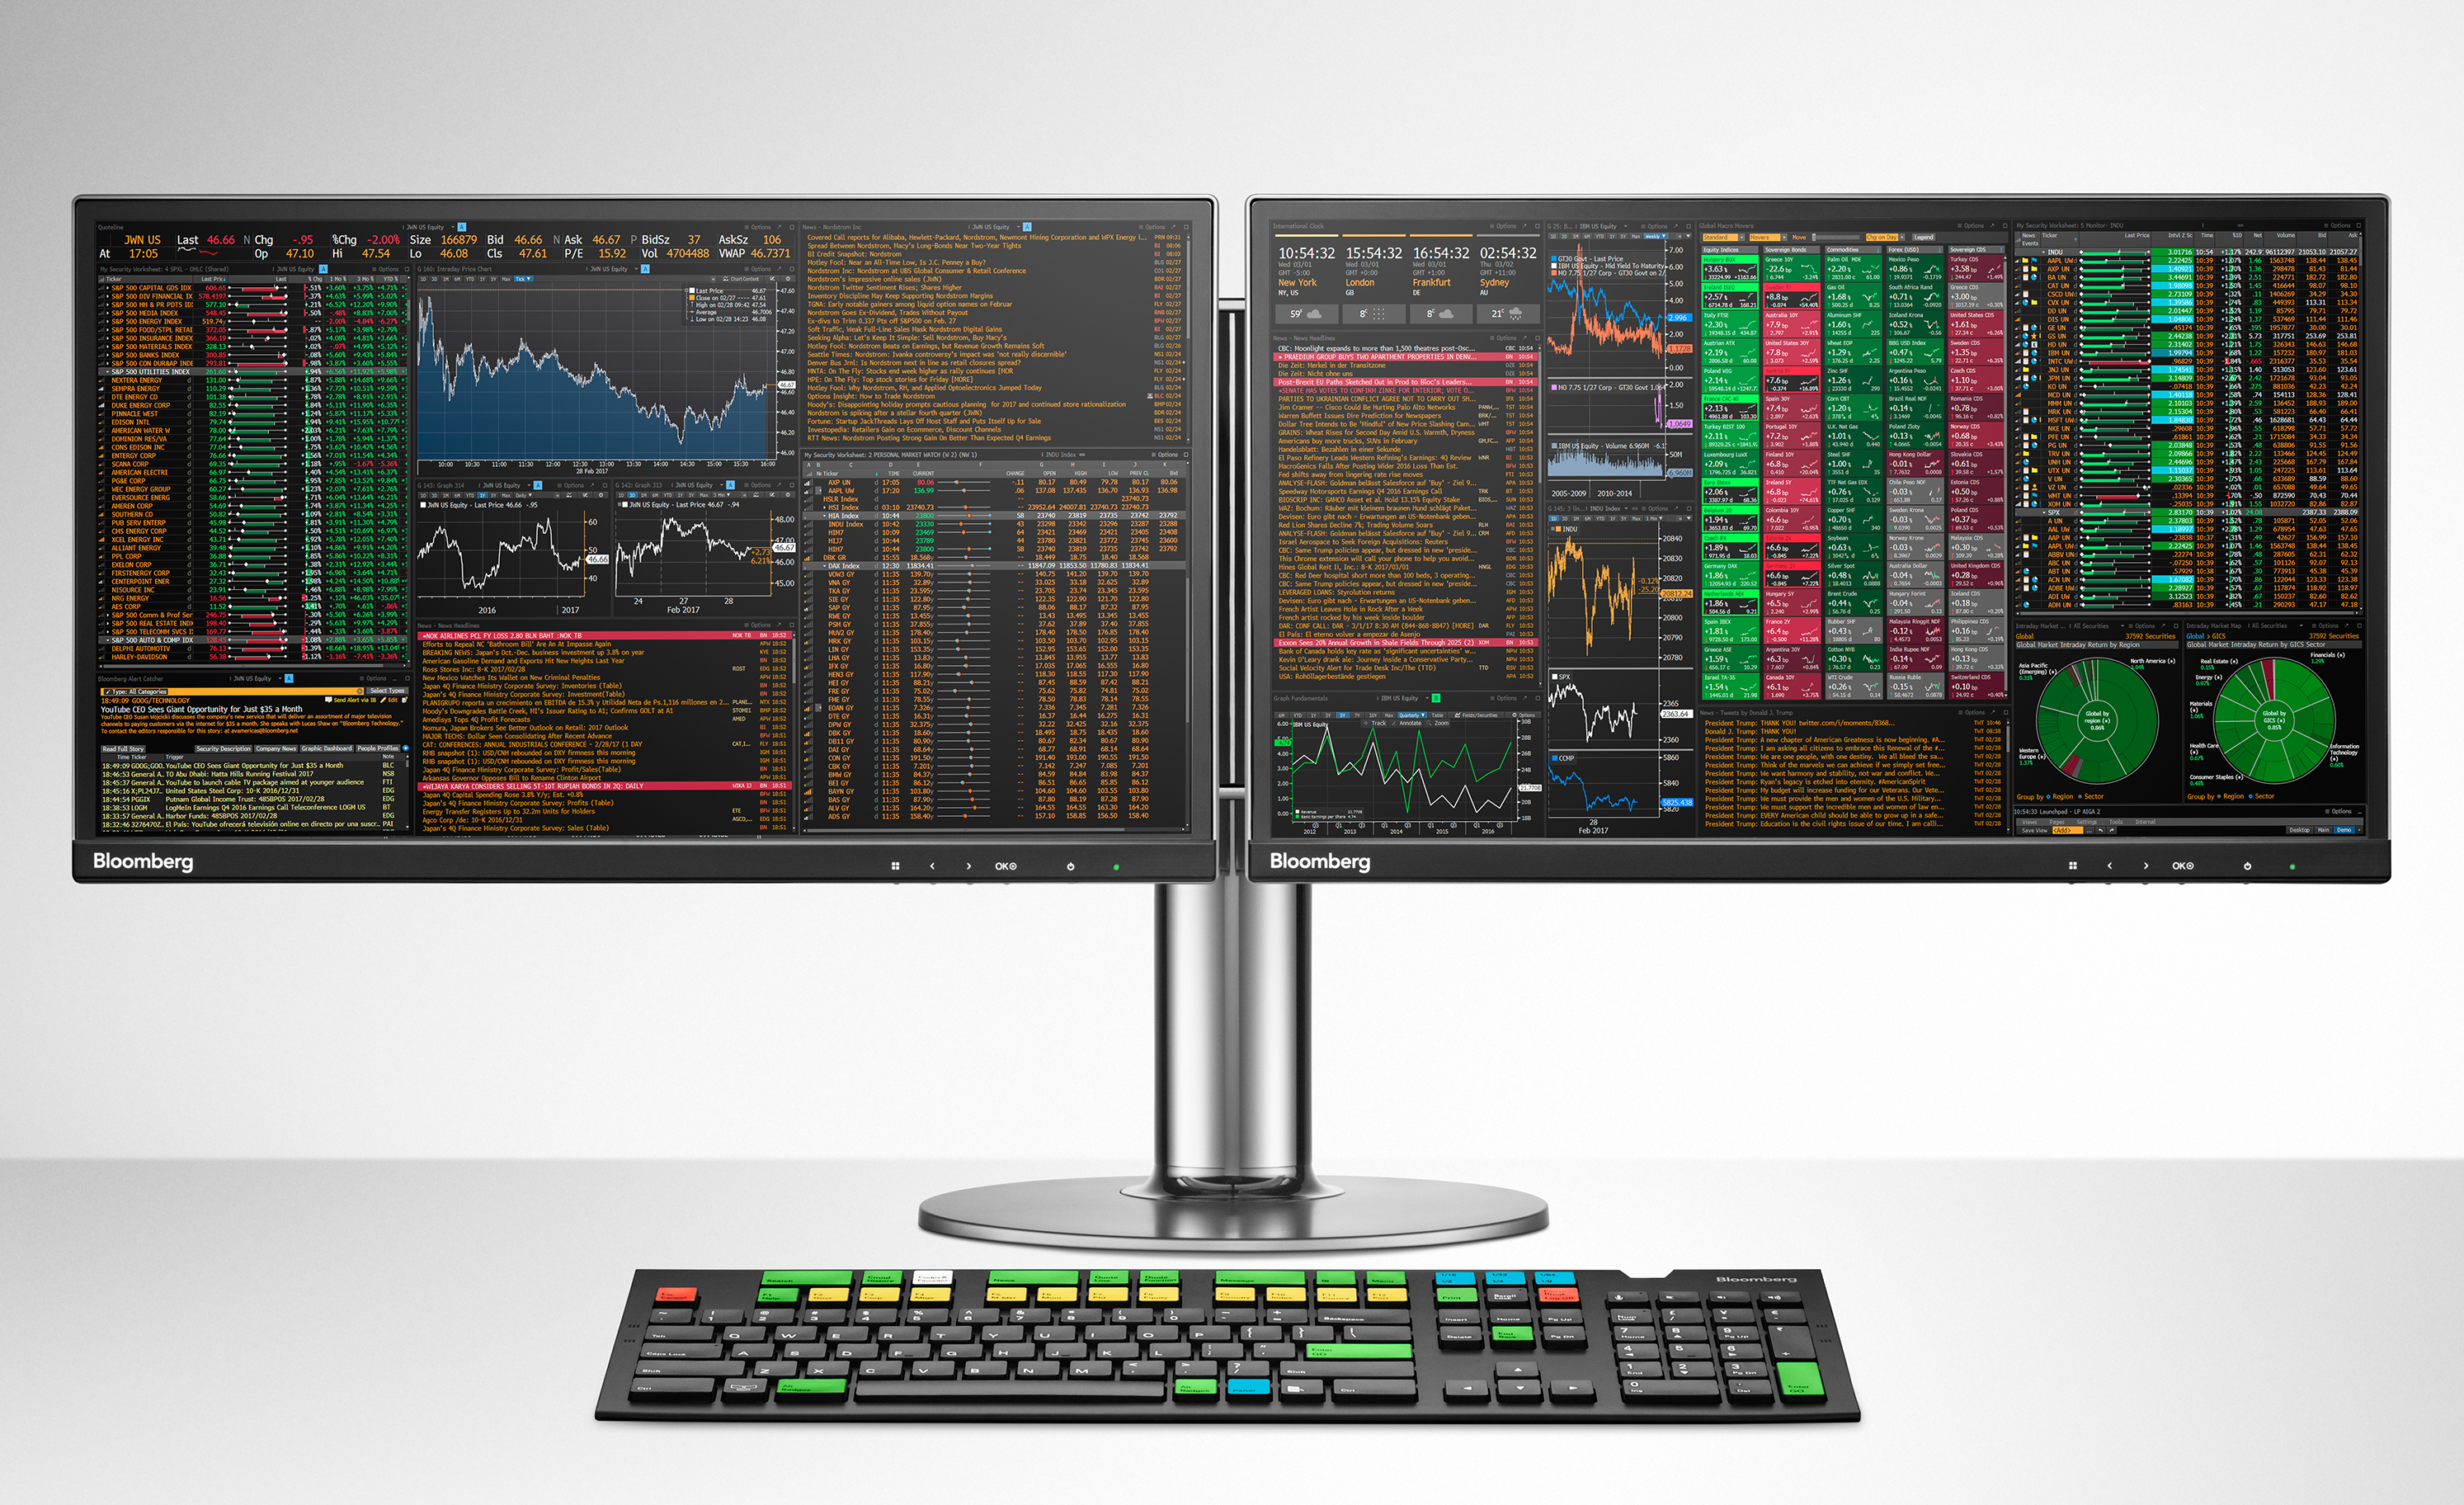 Bloomberg Terminal monitor and keyboard